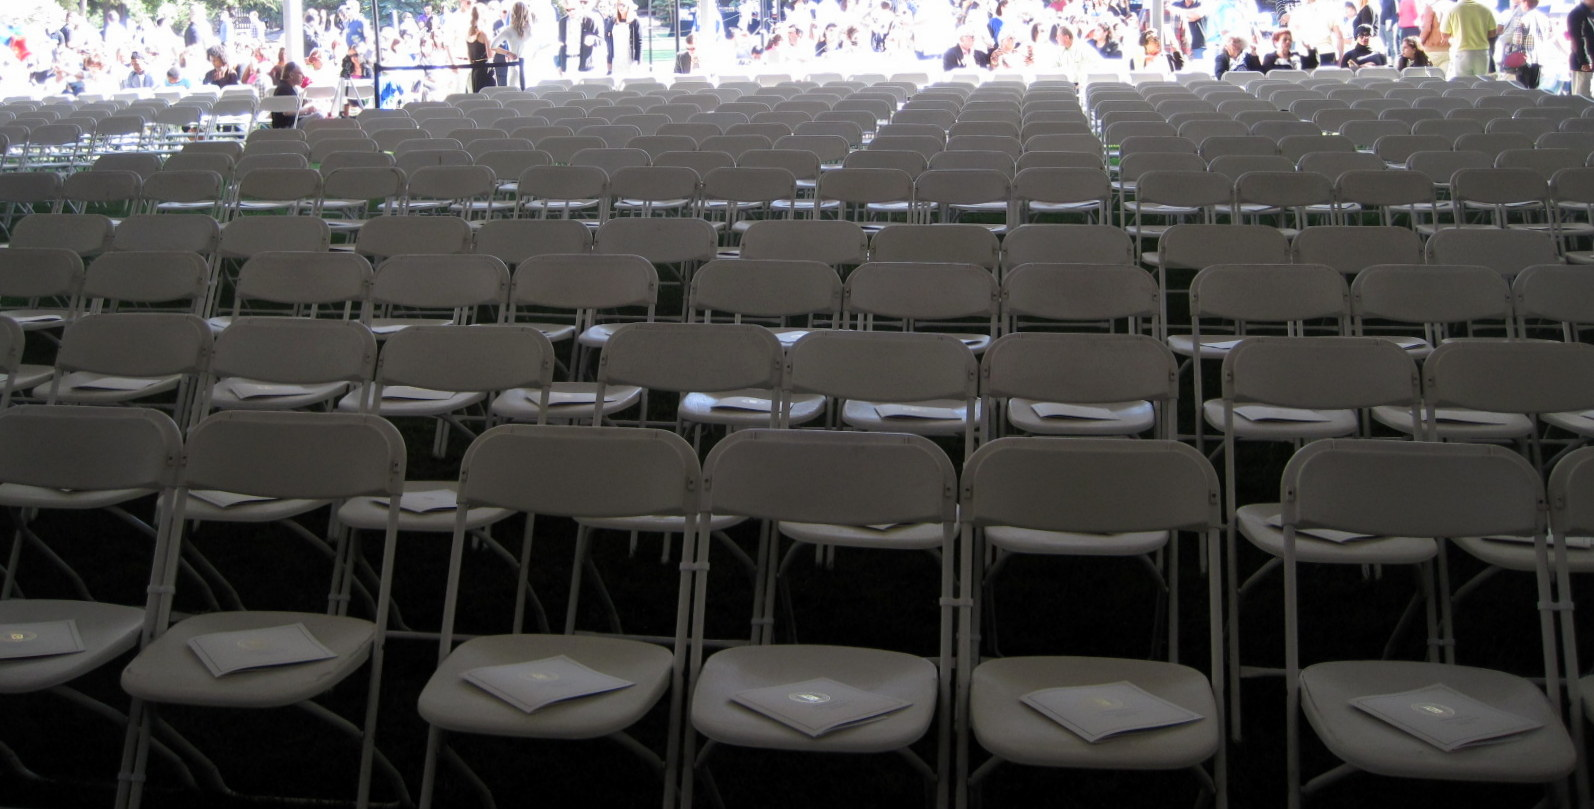 Chairs for Grads